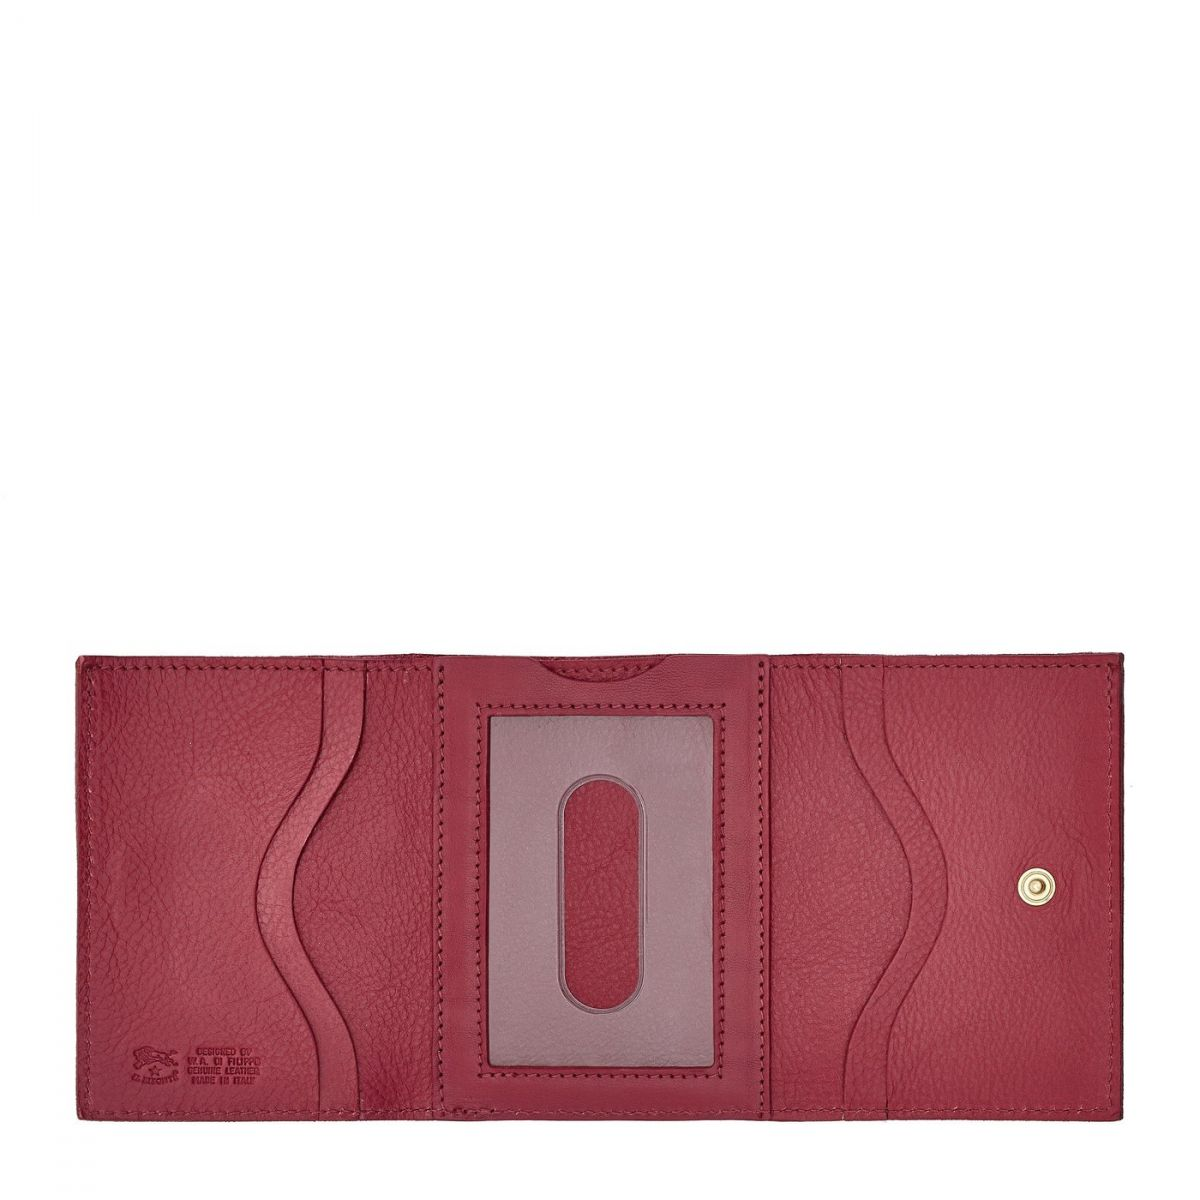 Wallet in Cowhide Leather SMW036 color Sumac | Details